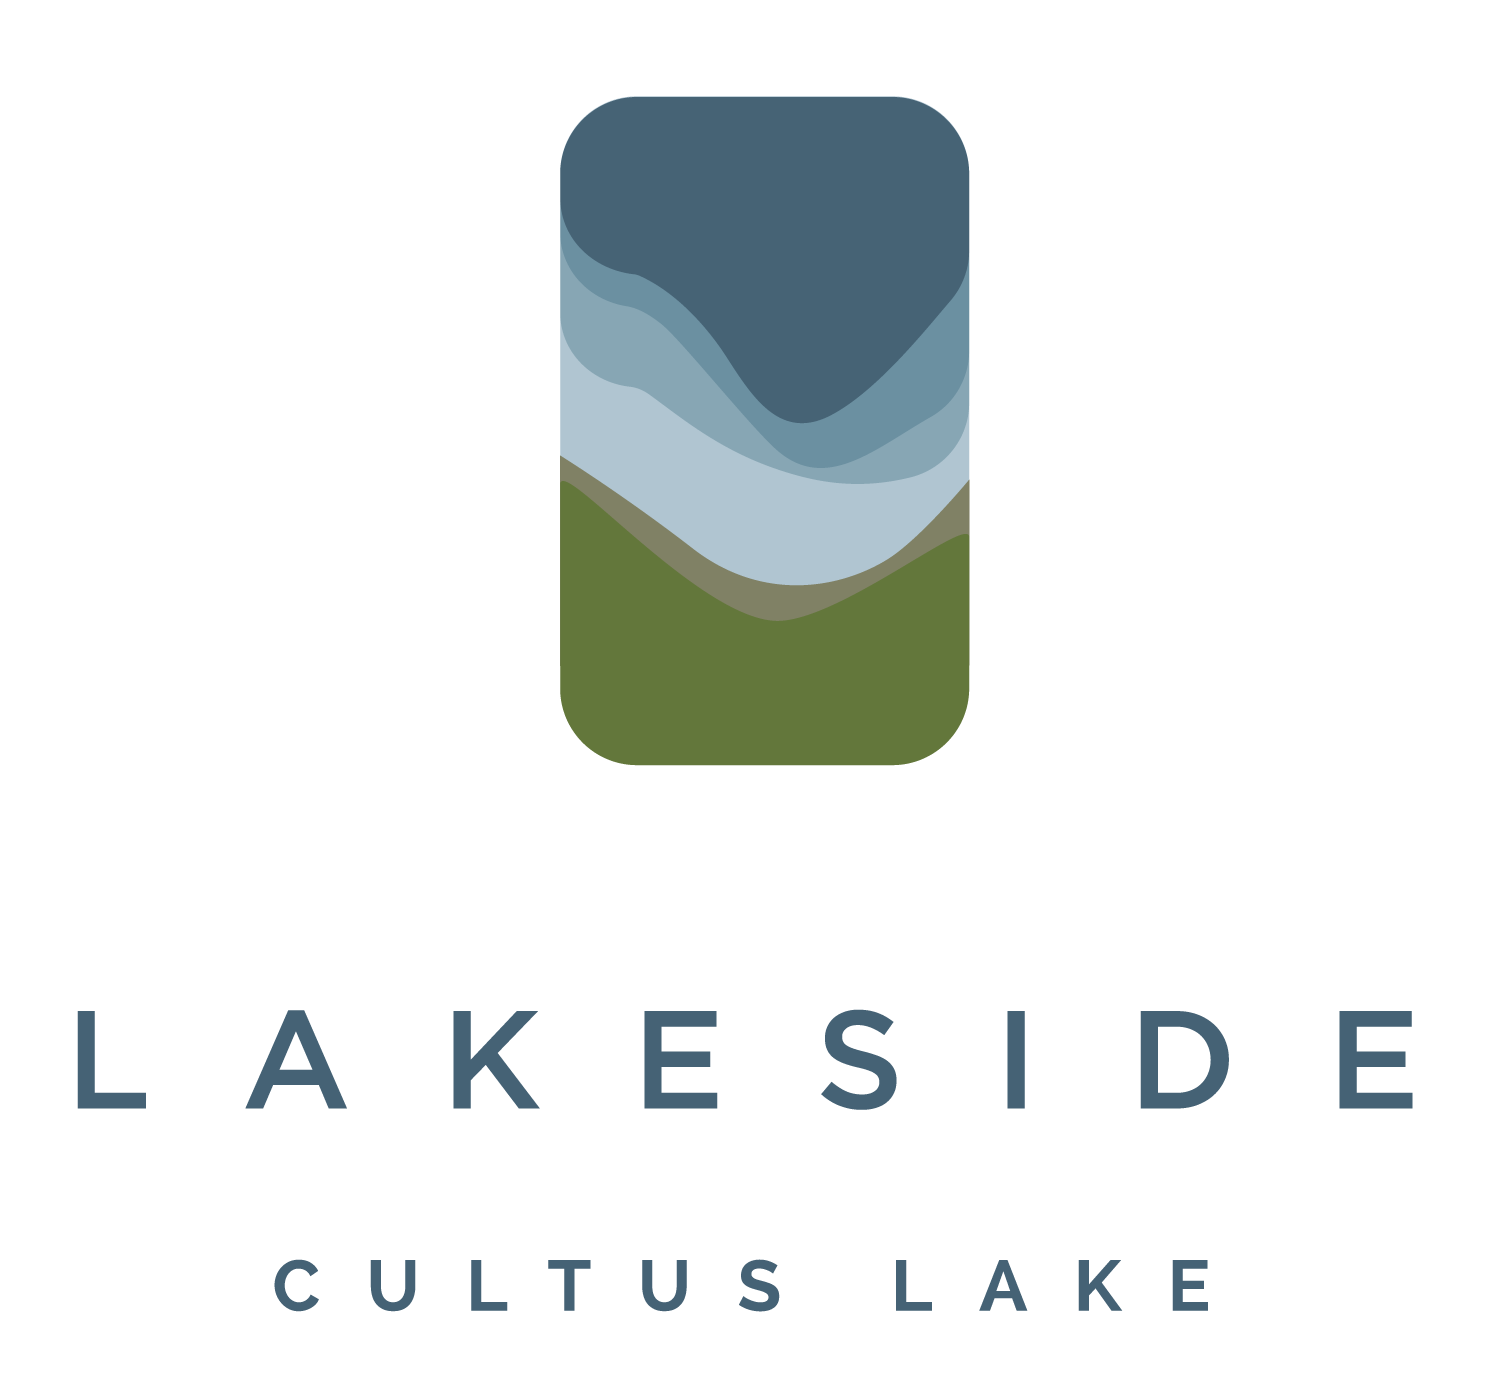 LAKESIDE CULTUS LAKE